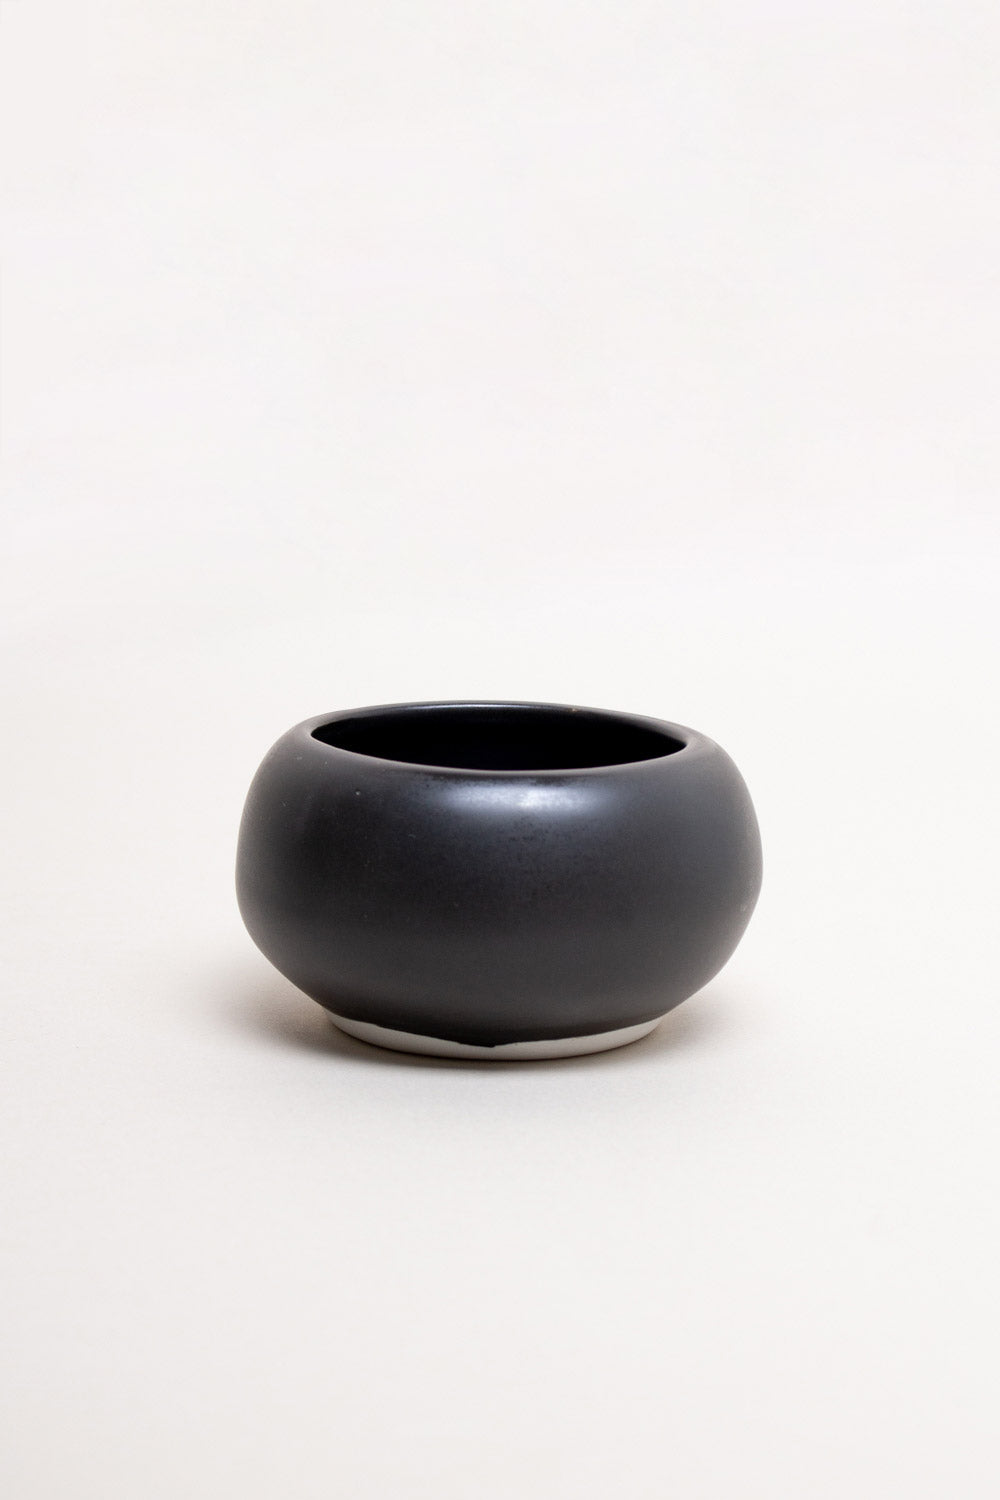 Nara Small Bowl in Black